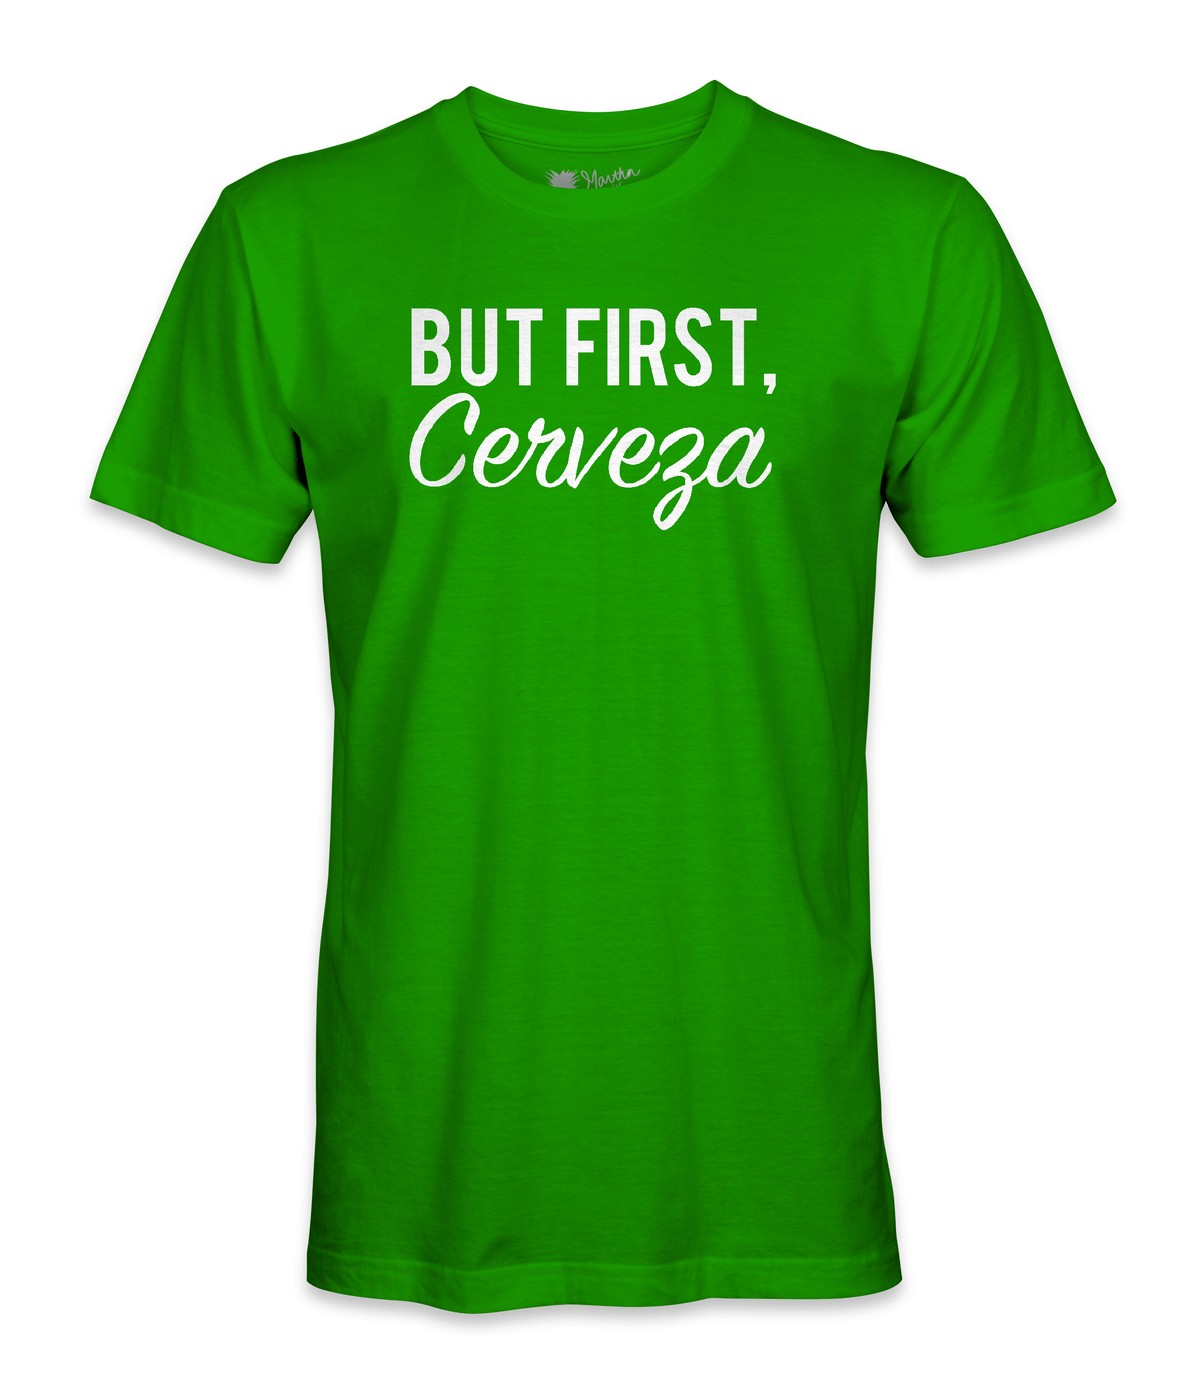 But First, Cerveza T-Shirt For Men